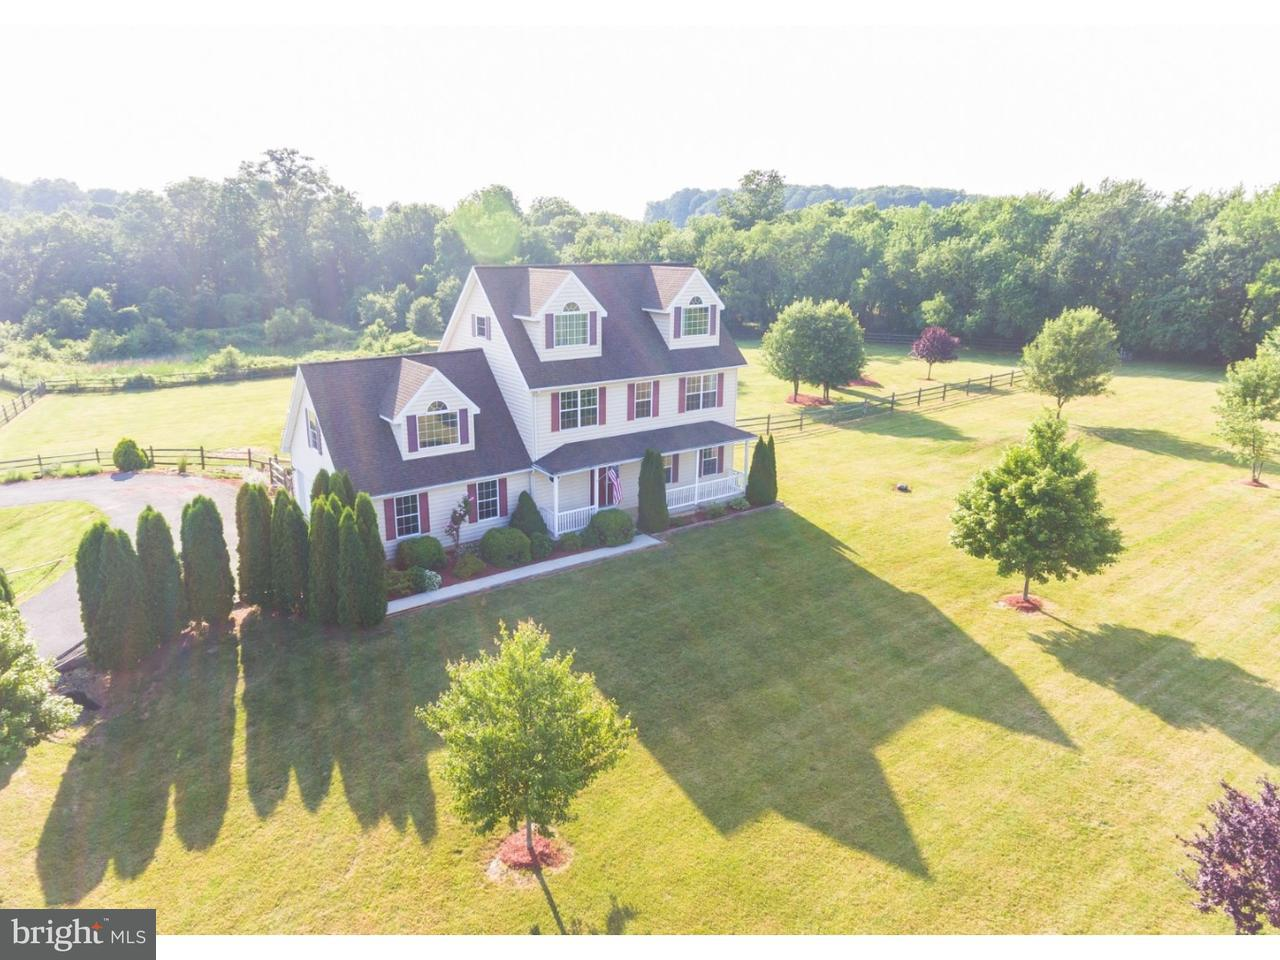 Single Family Home for Rent at 188 SUNNYSIDE Road West Grove, Pennsylvania 19390 United States